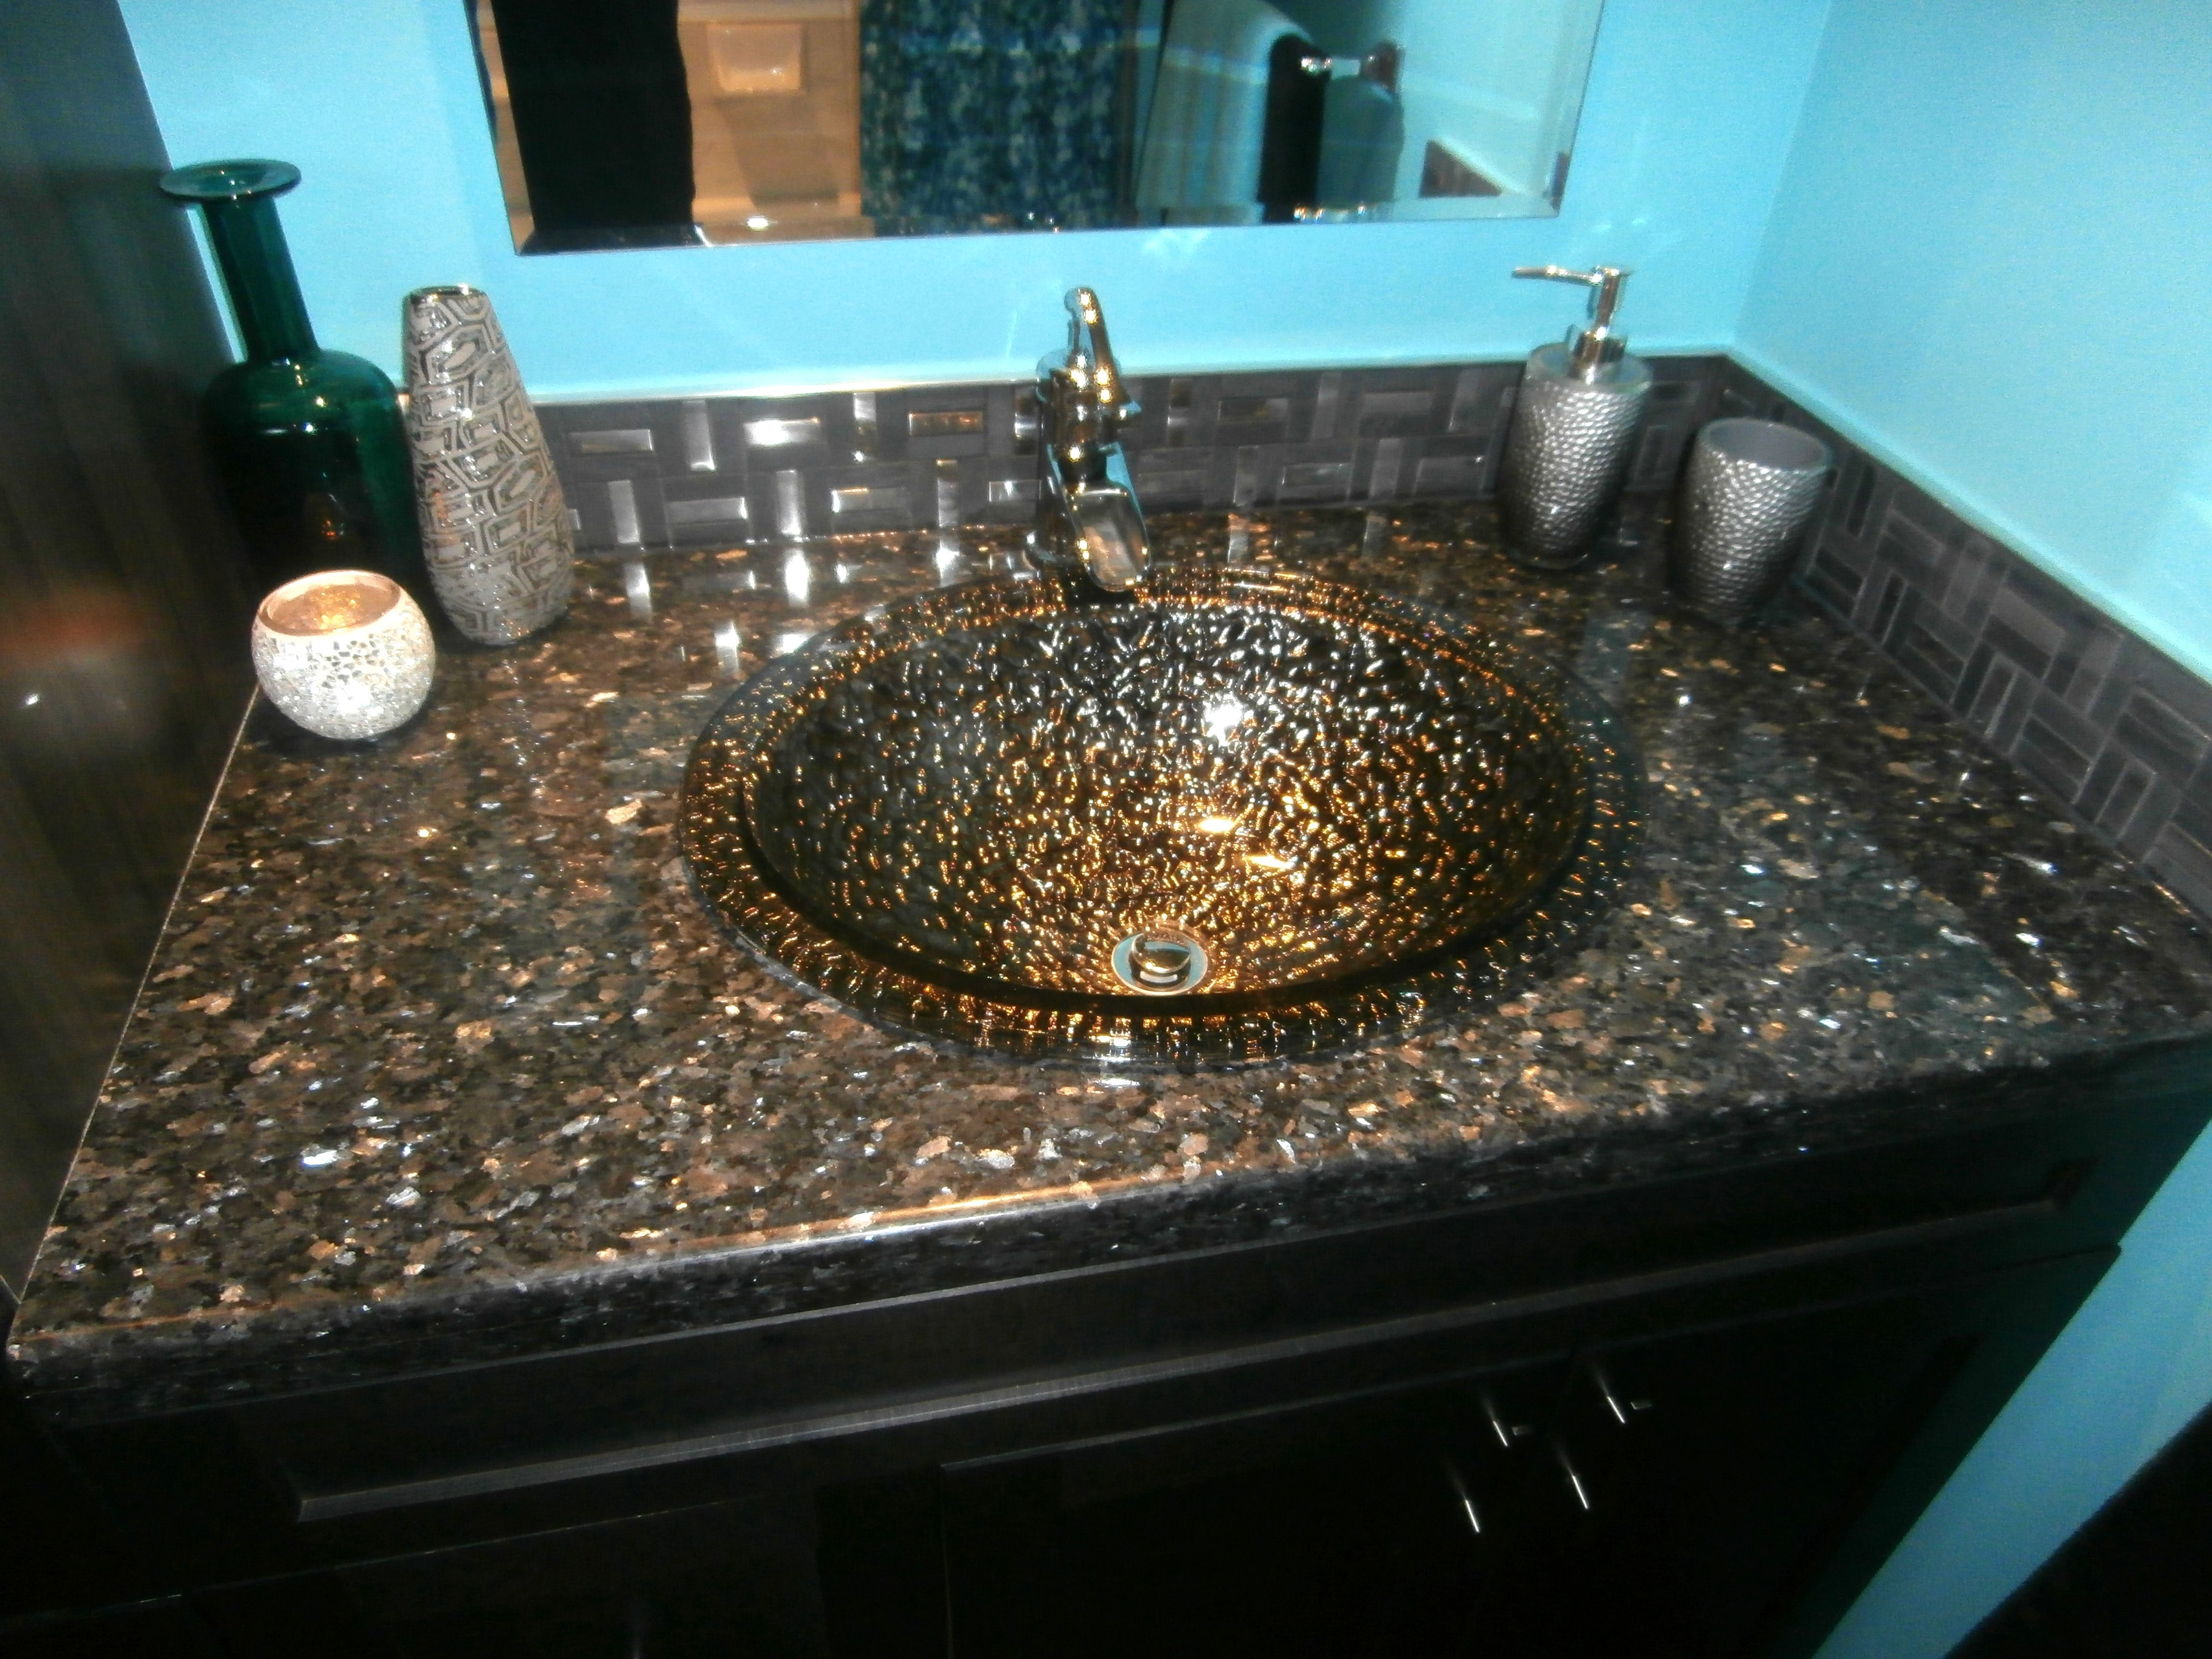 Shivakashi granite countertops slab and prices living rooms gallery - Zambukka Charcoal Cabinetry Blue Pearl Granite Pebble Glass Sinks Black Nickel